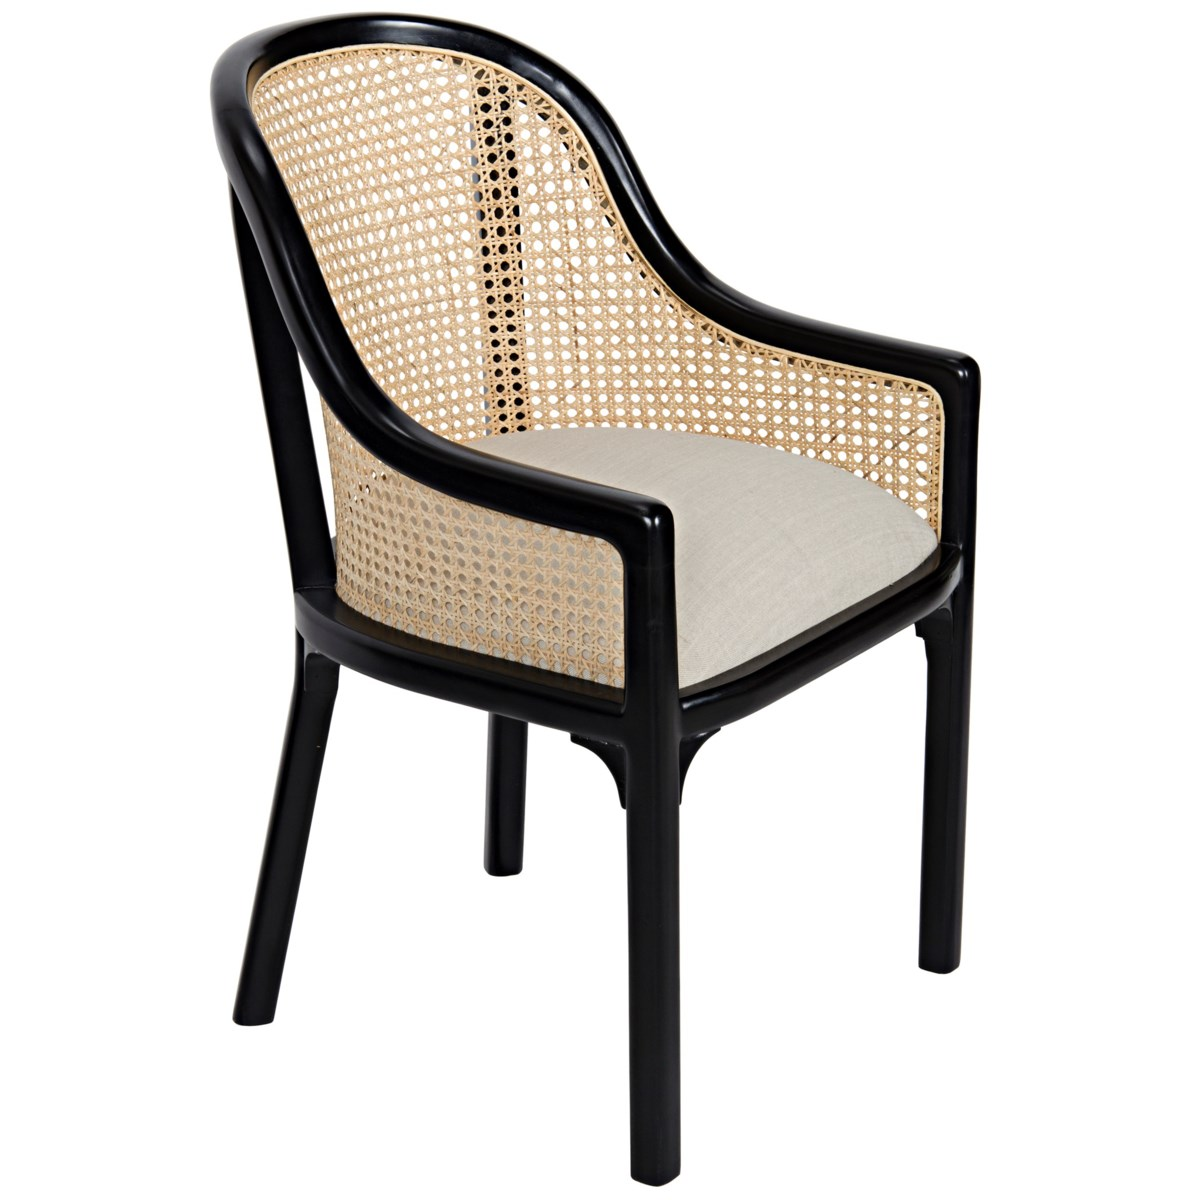 Gaston Chair with Caning, Hand Rubbed Black, Linen